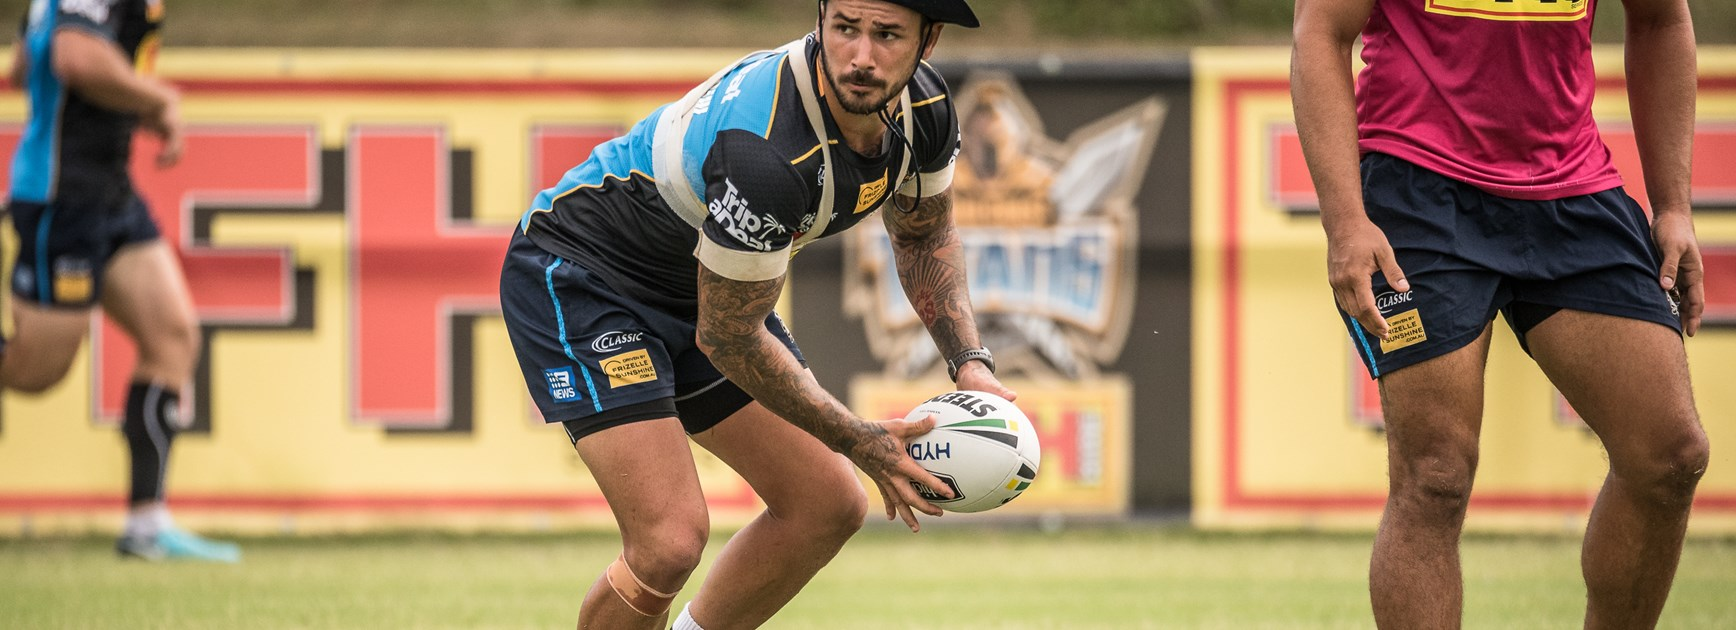 Peats' relentless in pursuit of perfection at Titans